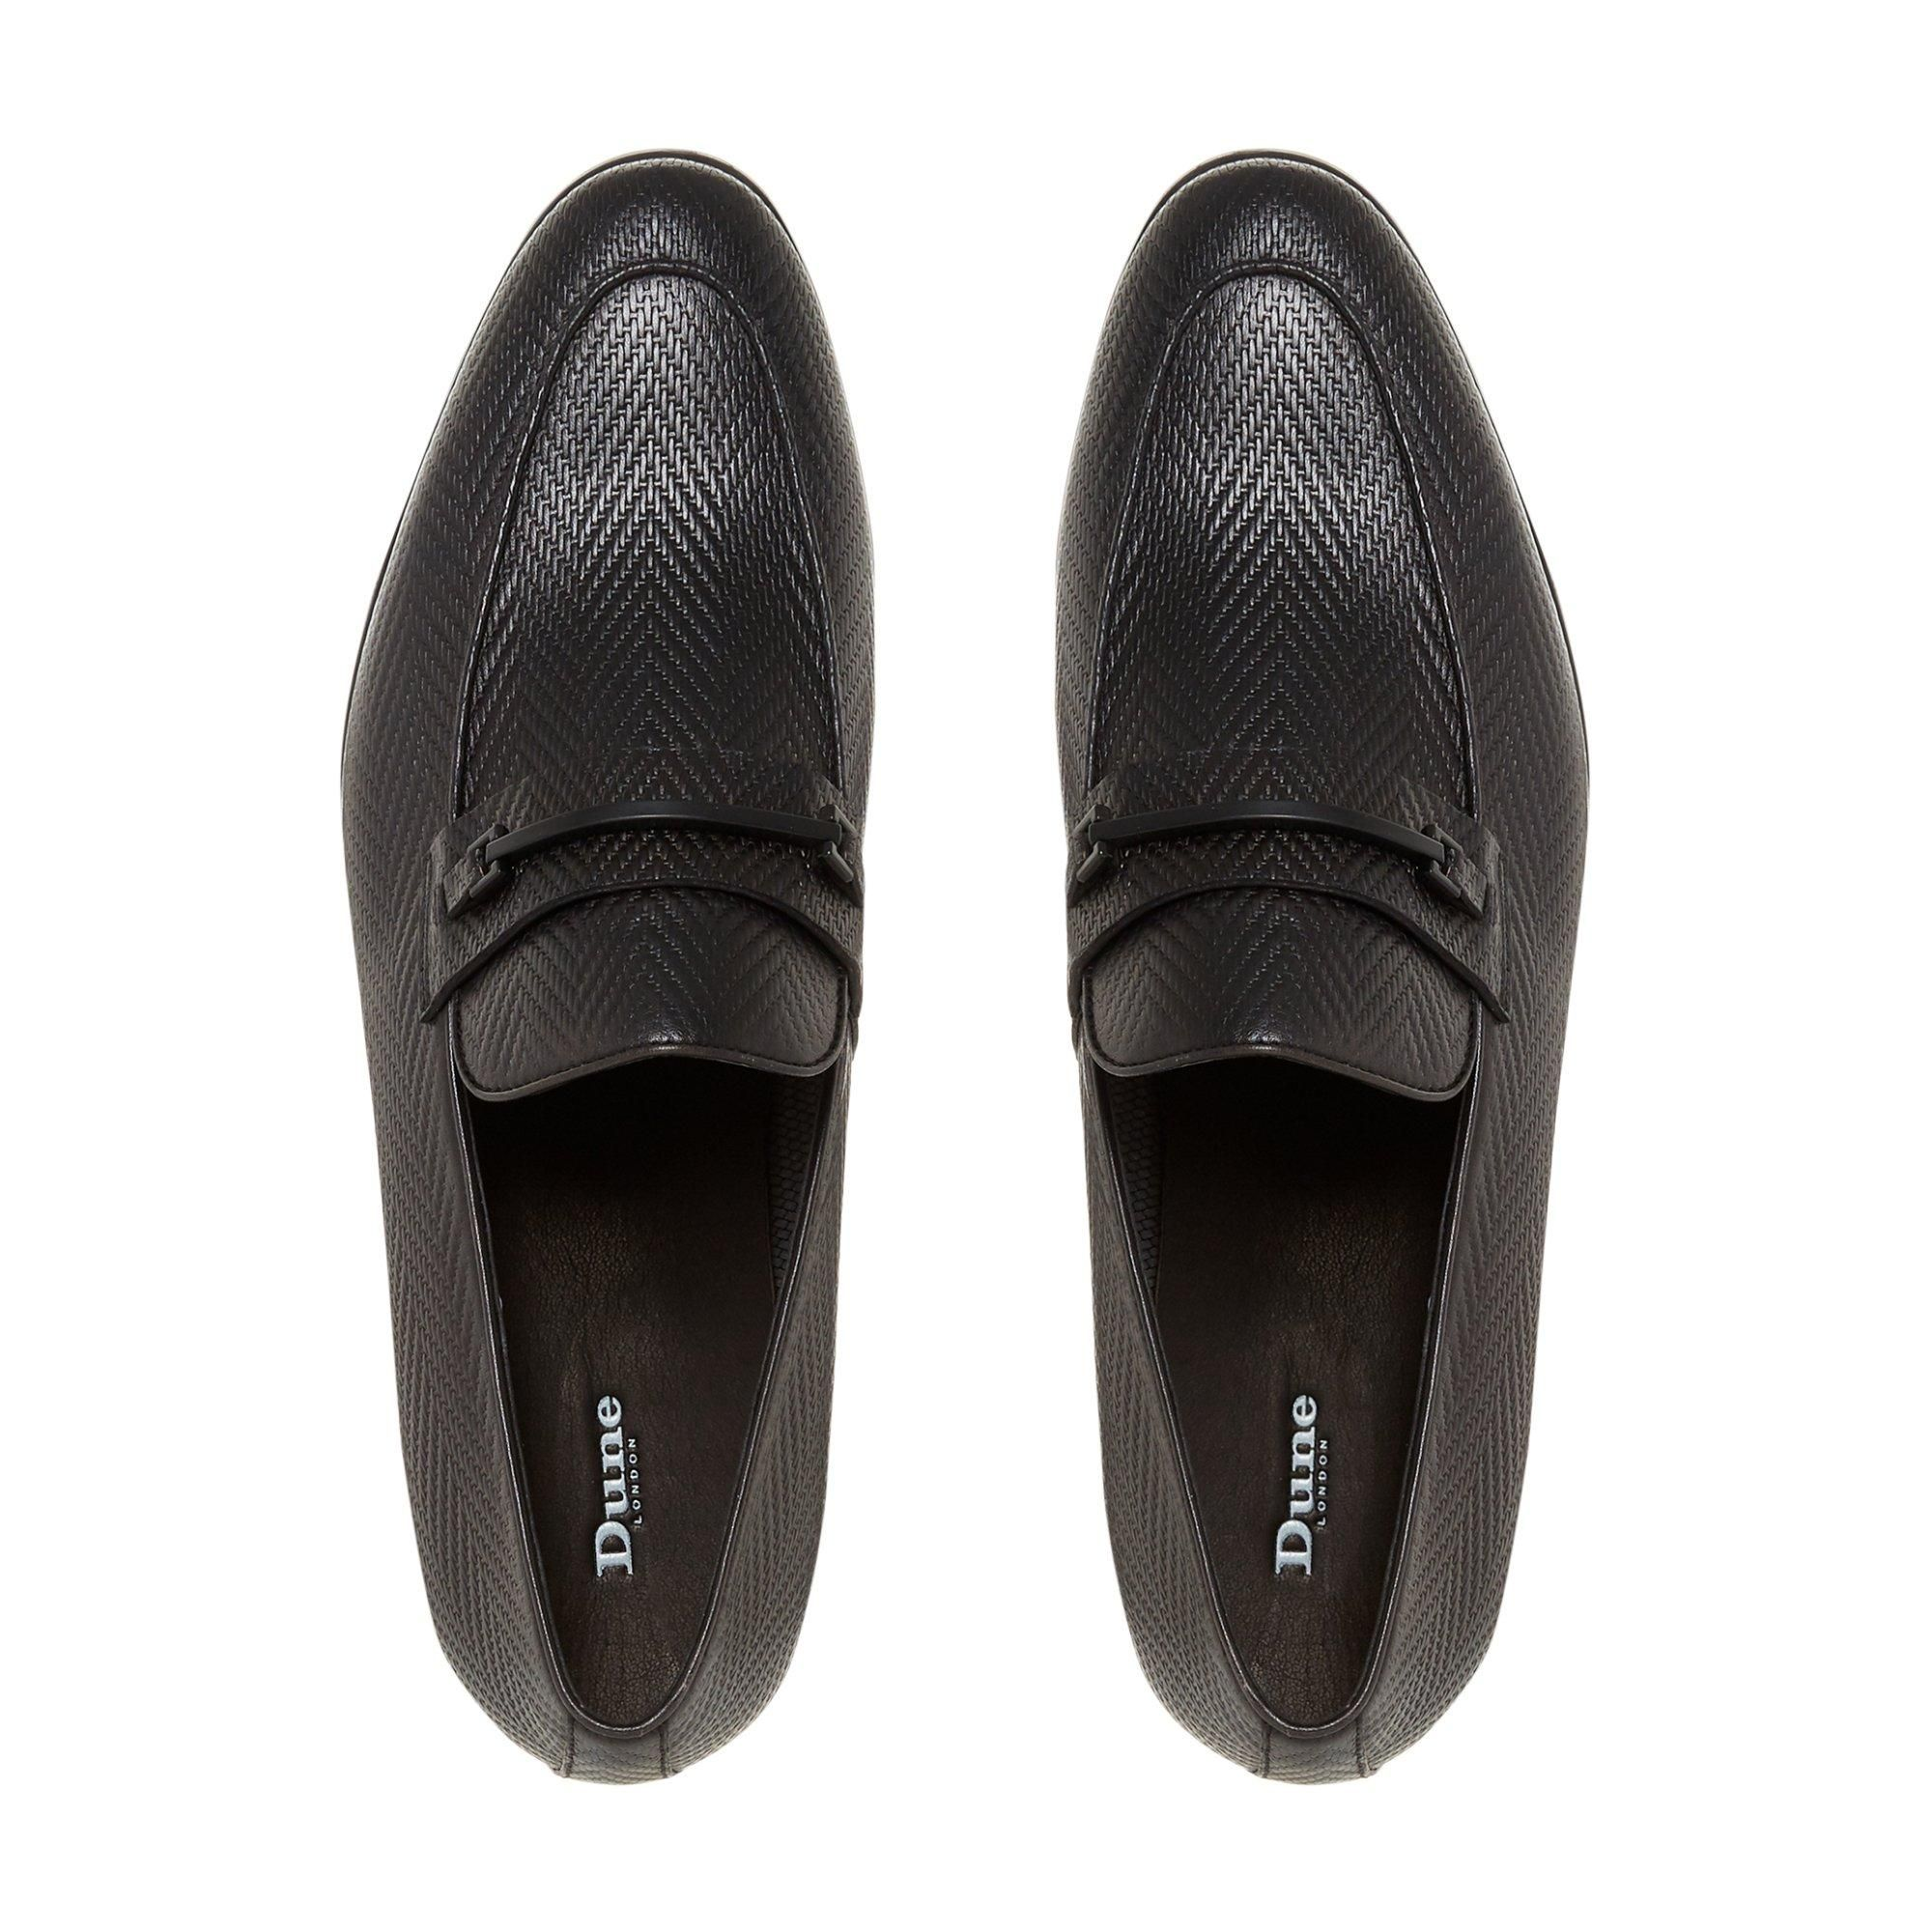 Dune Mens SURF Round Toe Loafer